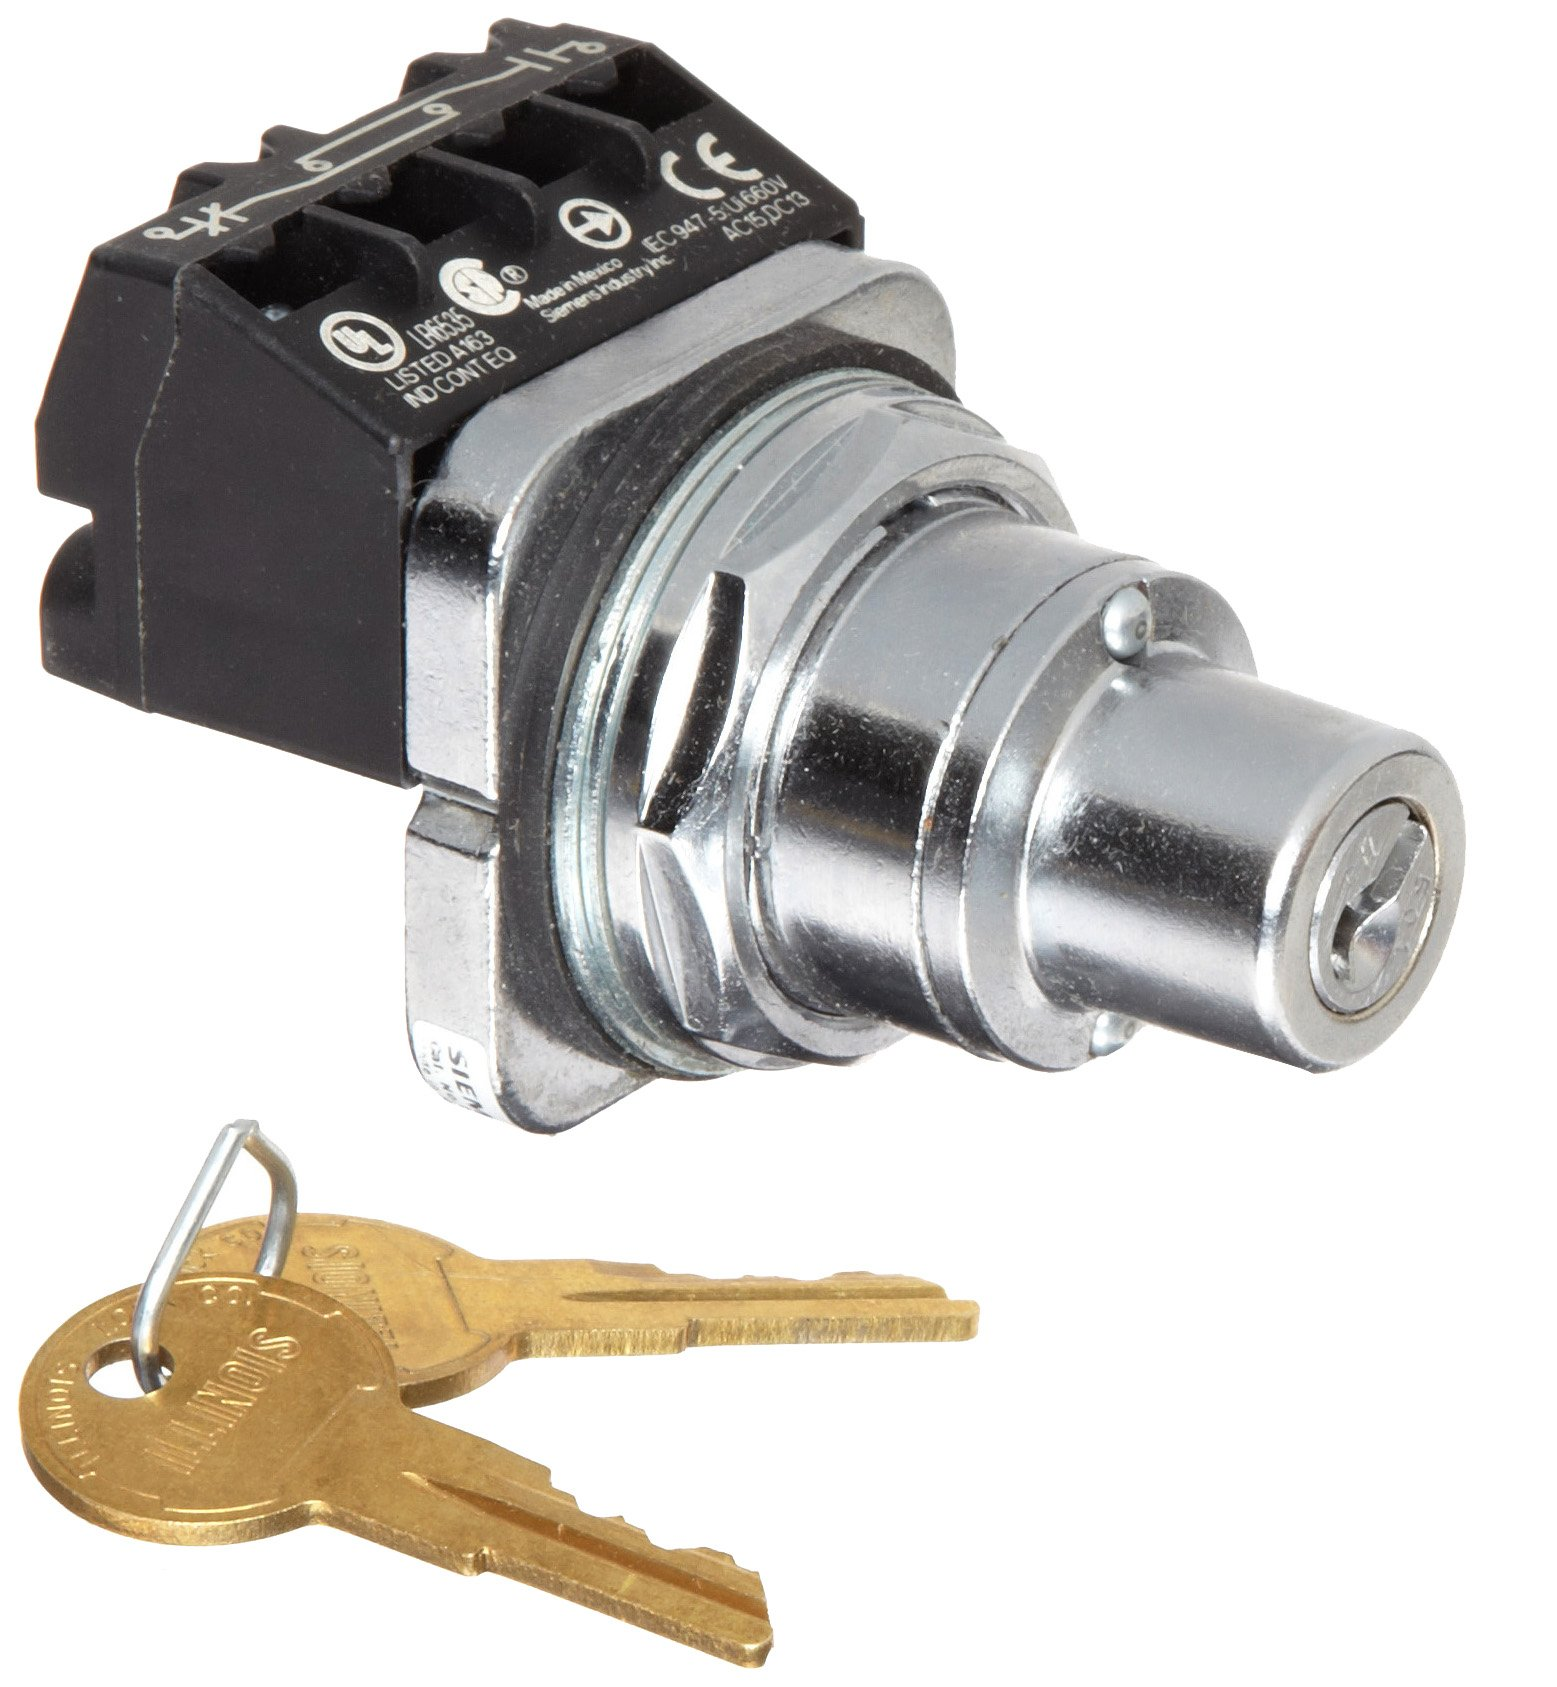 Siemens 52SC6AFA1 Heavy Duty Key Operated Selector Switch Unit, Water and Oil Tight, 2 Positions, Maintained Operation, Key Removable In Left Position, A Cam, 1NO + 1NC Contact Blocks